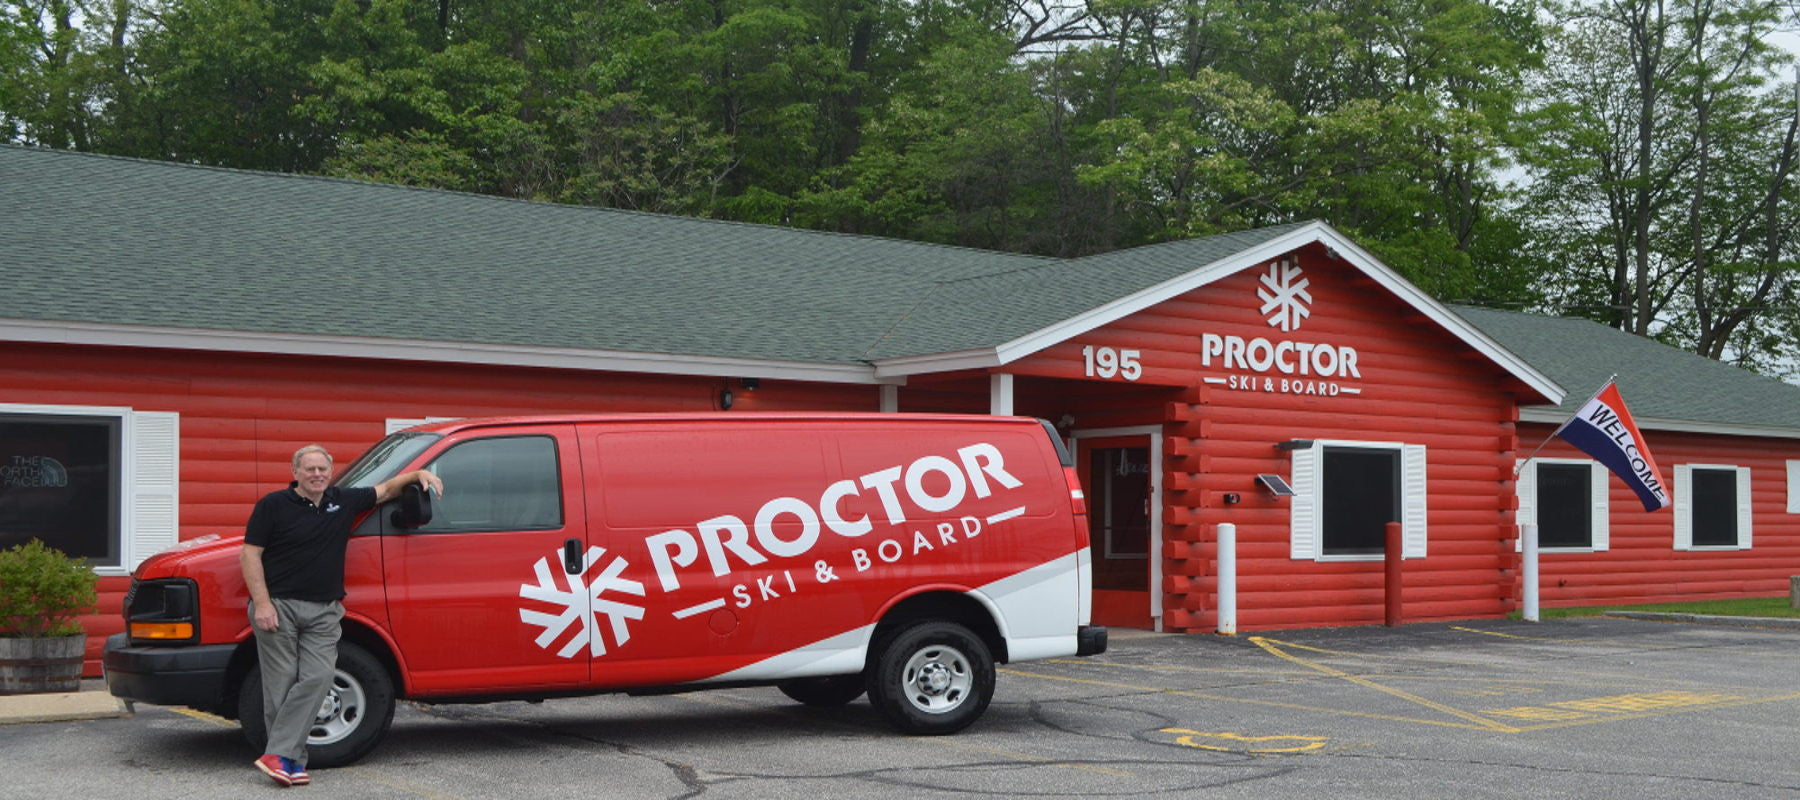 Proctor ski & Board, specialty ski shop in Nashua NH. Providing the best ski & Snowboard brands and clothing. Carrying Patagonia. Best Deals on best brands.